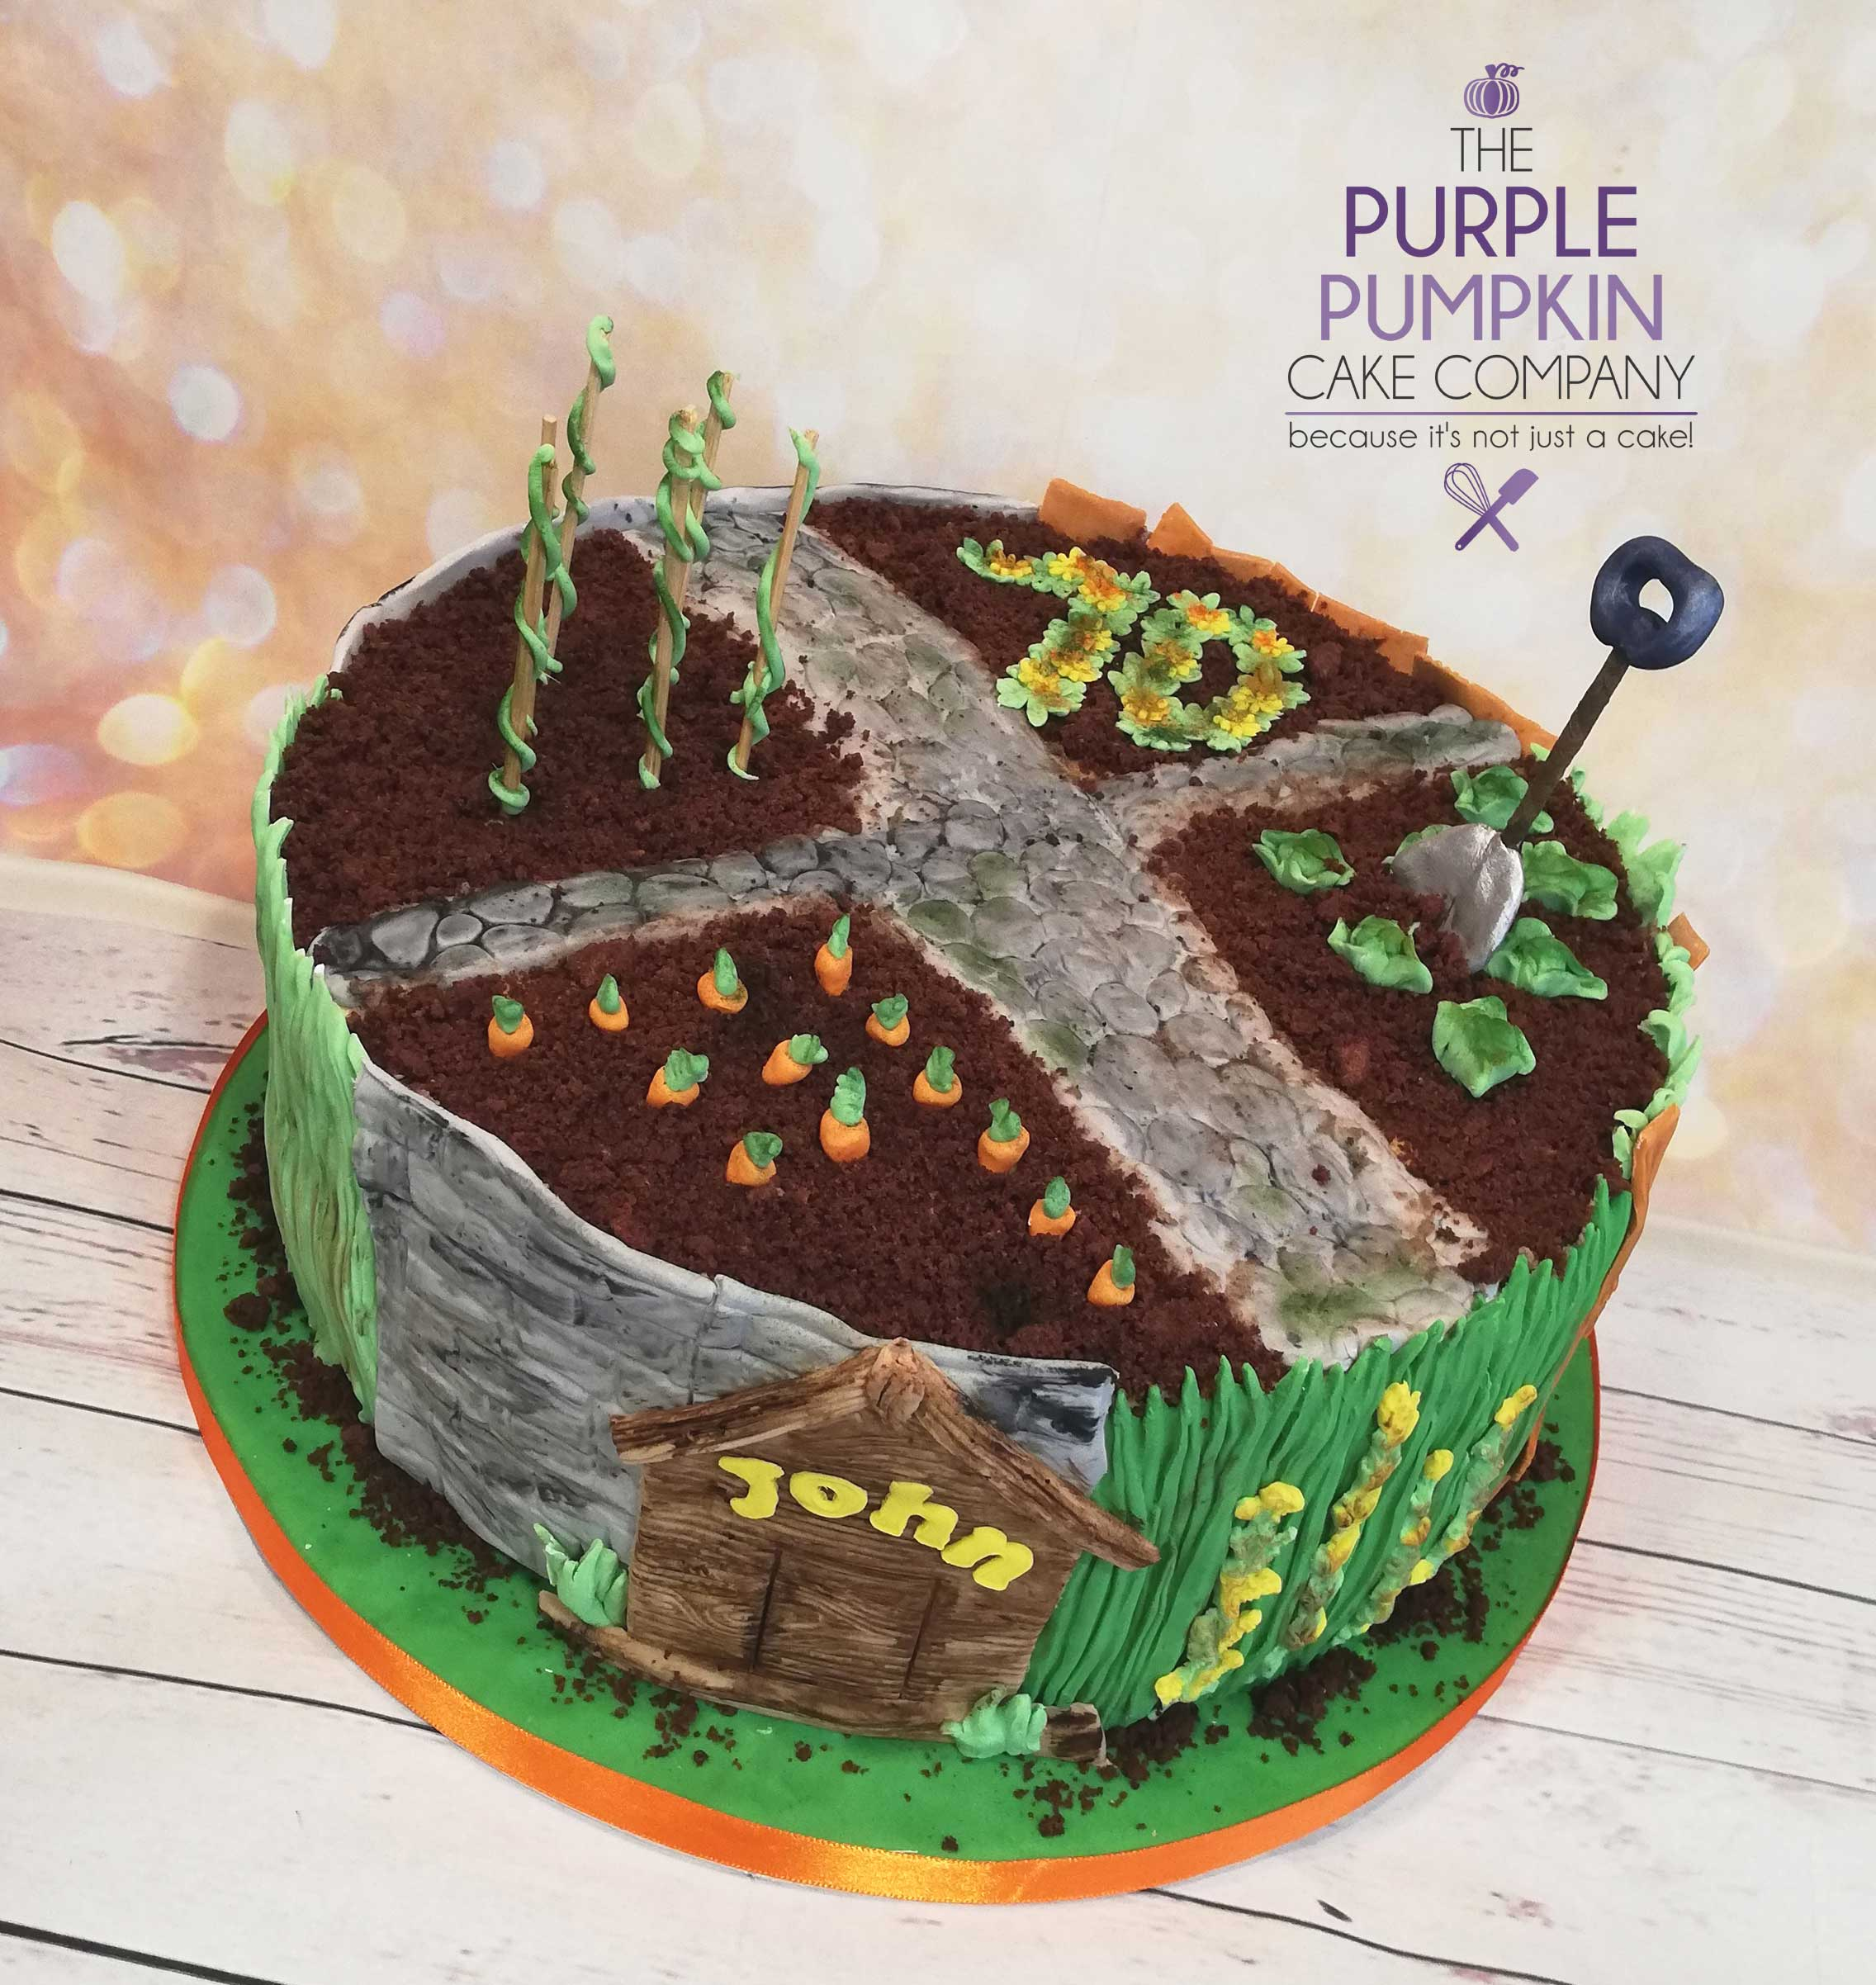 The allotment cake